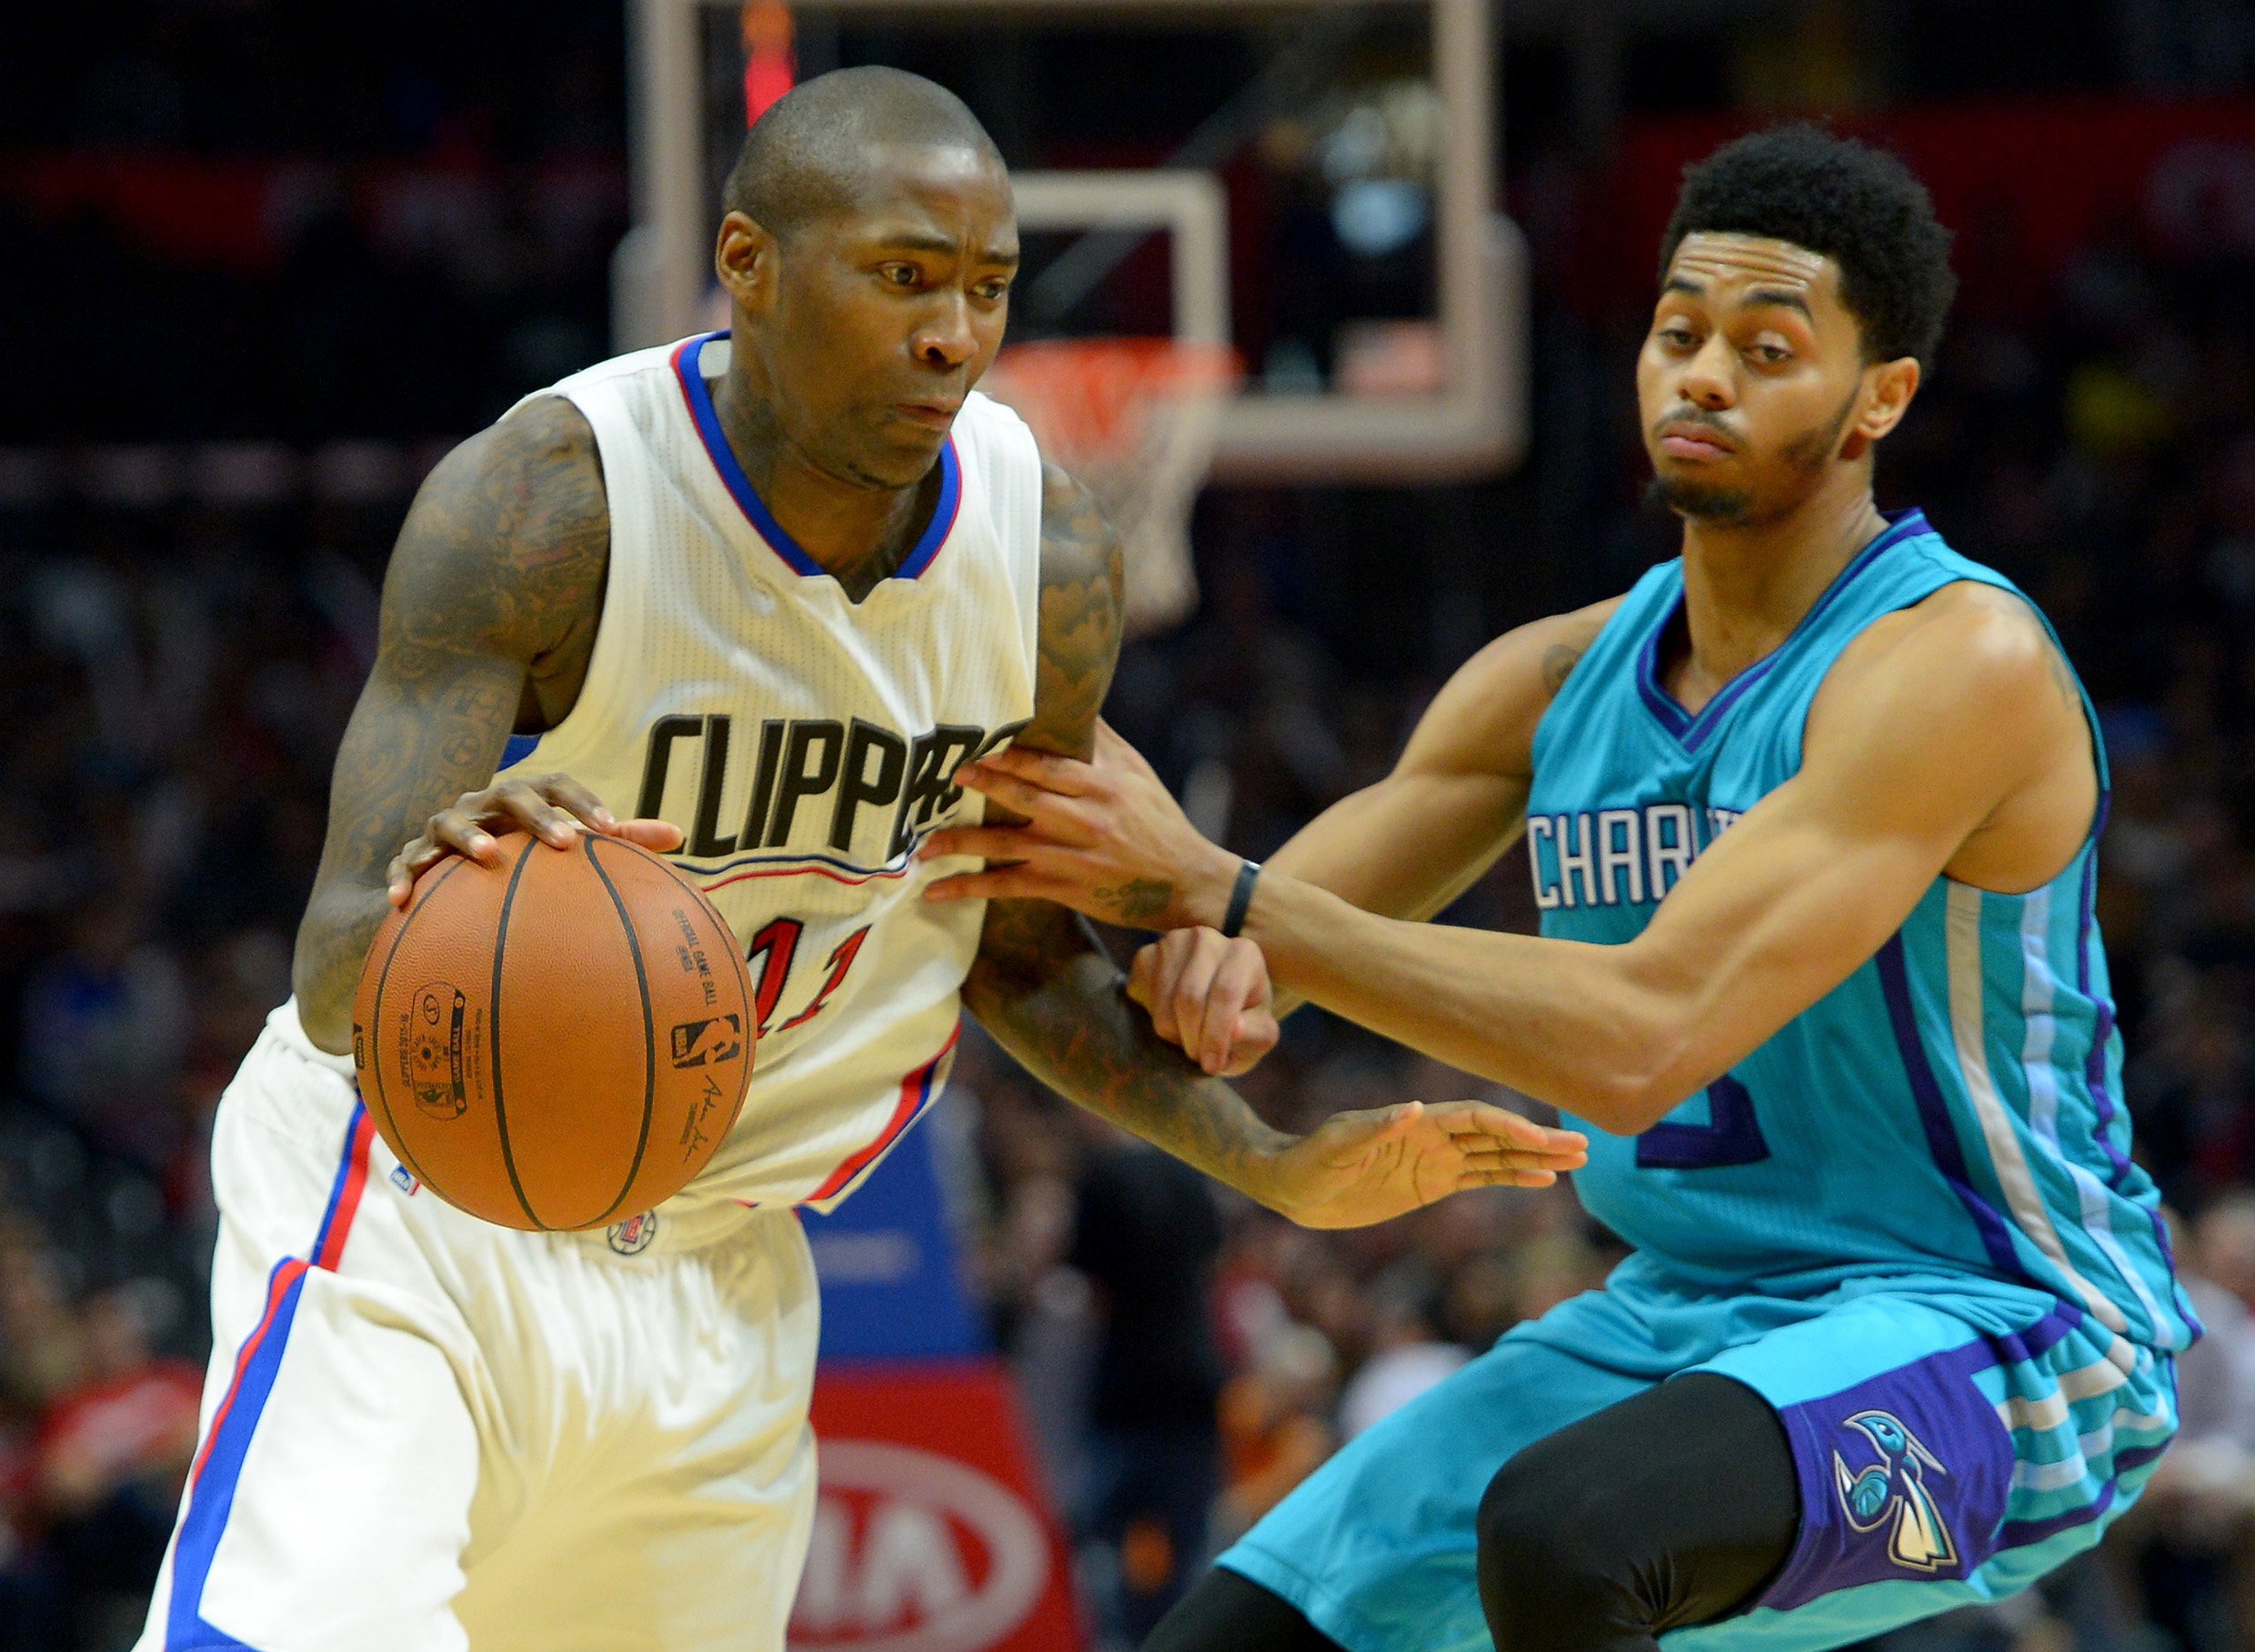 9046945-nba-charlotte-hornets-at-los-angeles-clippers